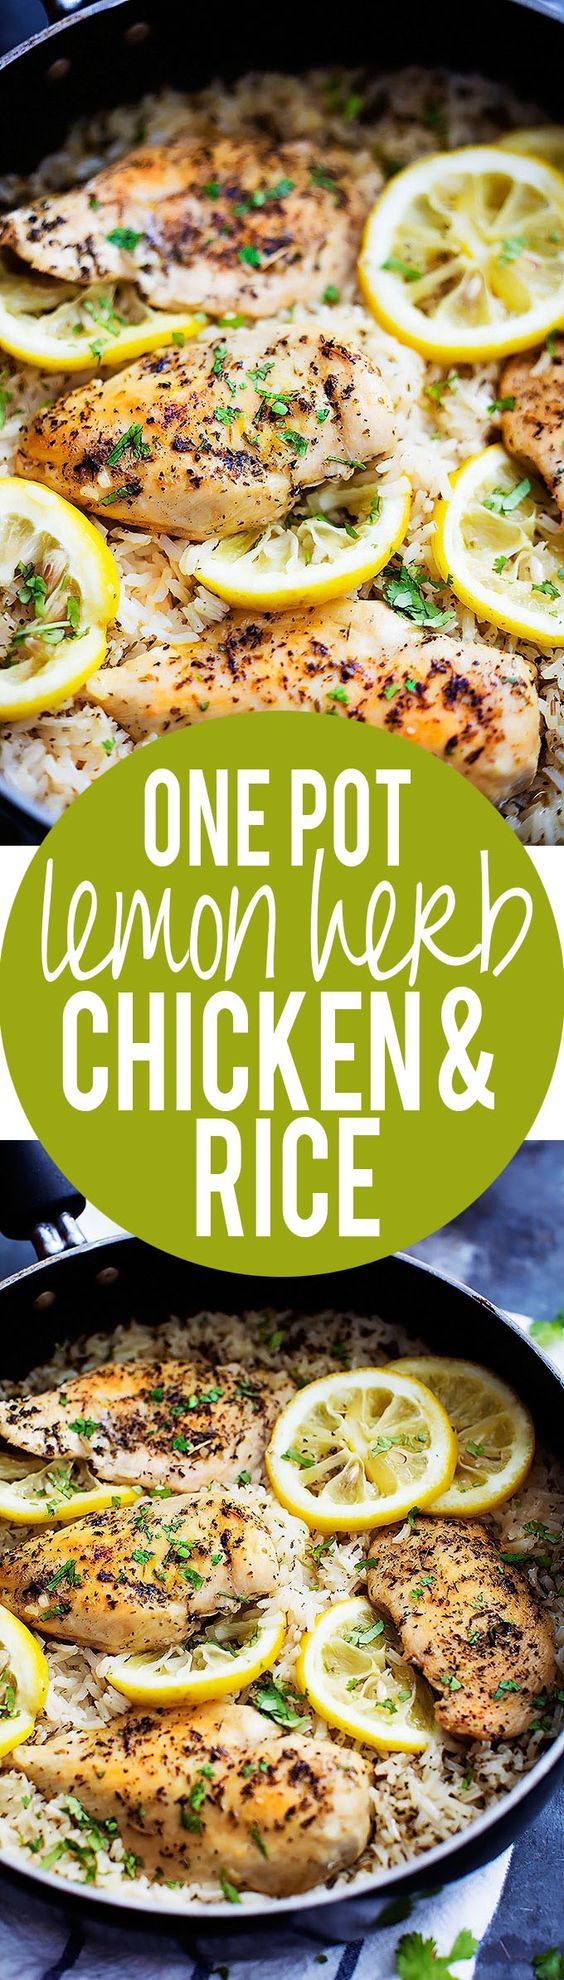 One Pot Lemon Herb Chicken & Rice | Creme de la Crumb: